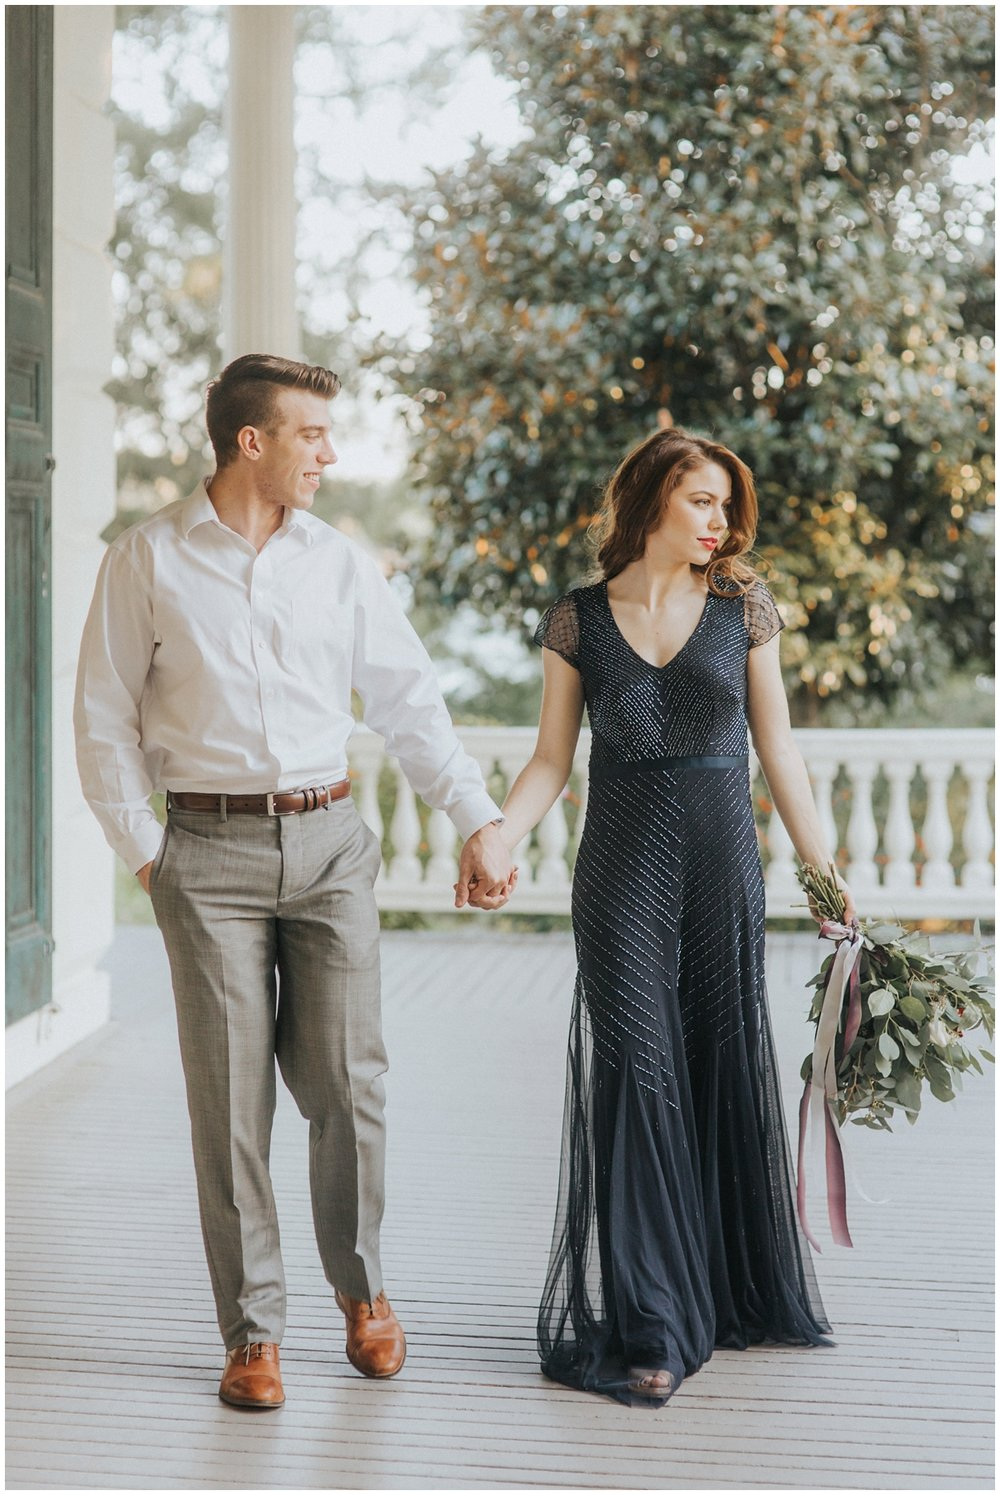 Glen_Foerd_Styled_Wedding_Session_0014.jpg